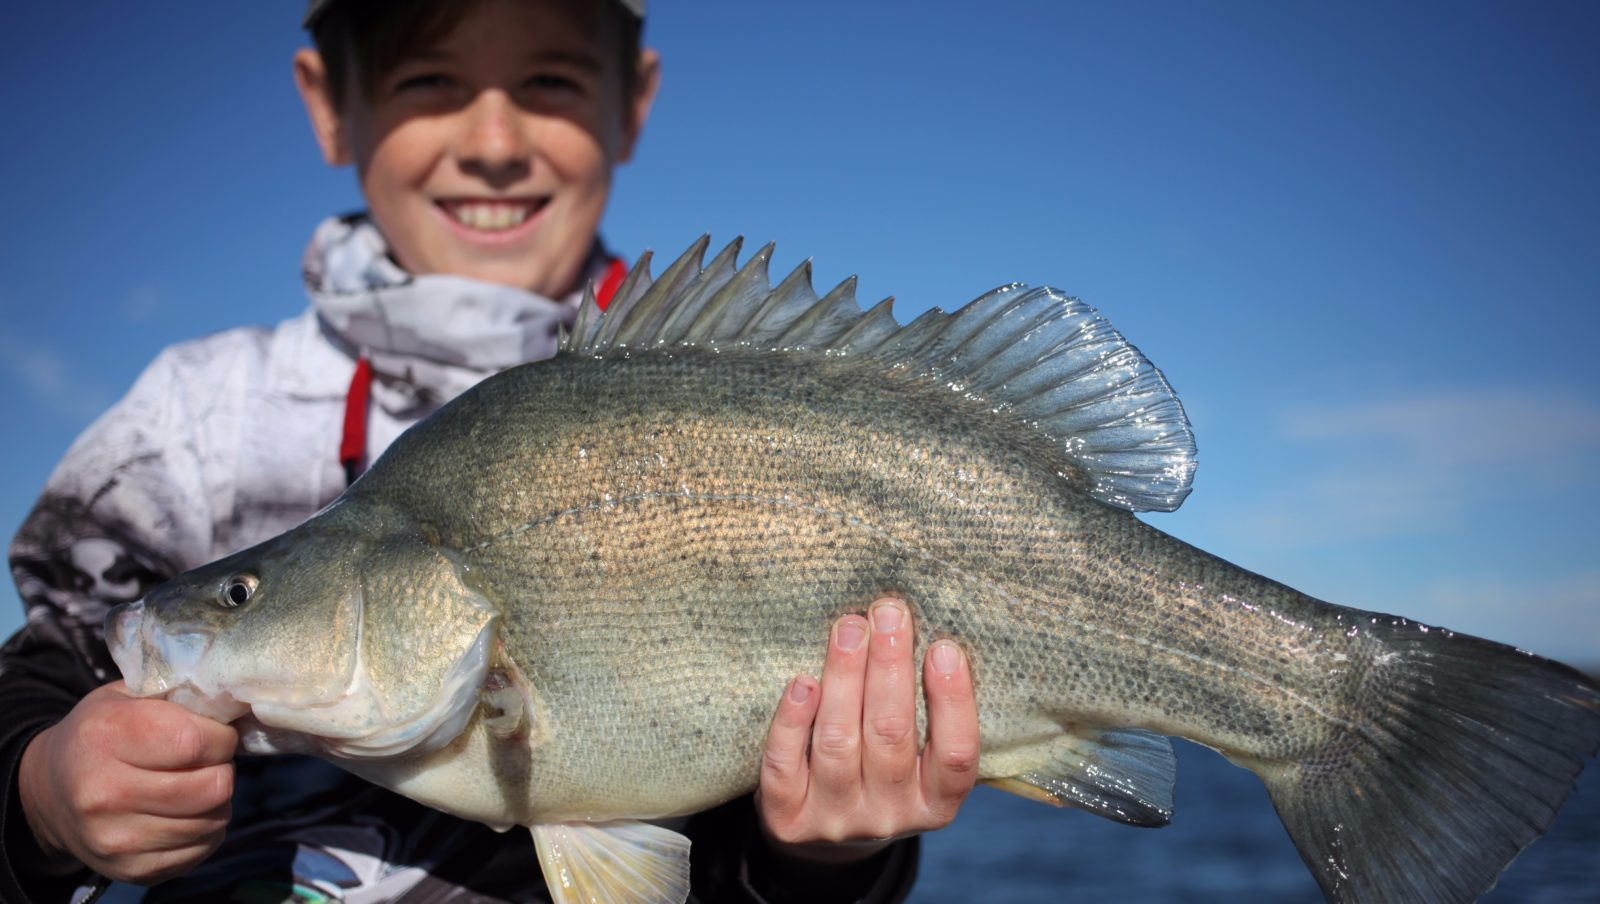 A lovely Golden Perch from Lake Burley Griffin just prior to release